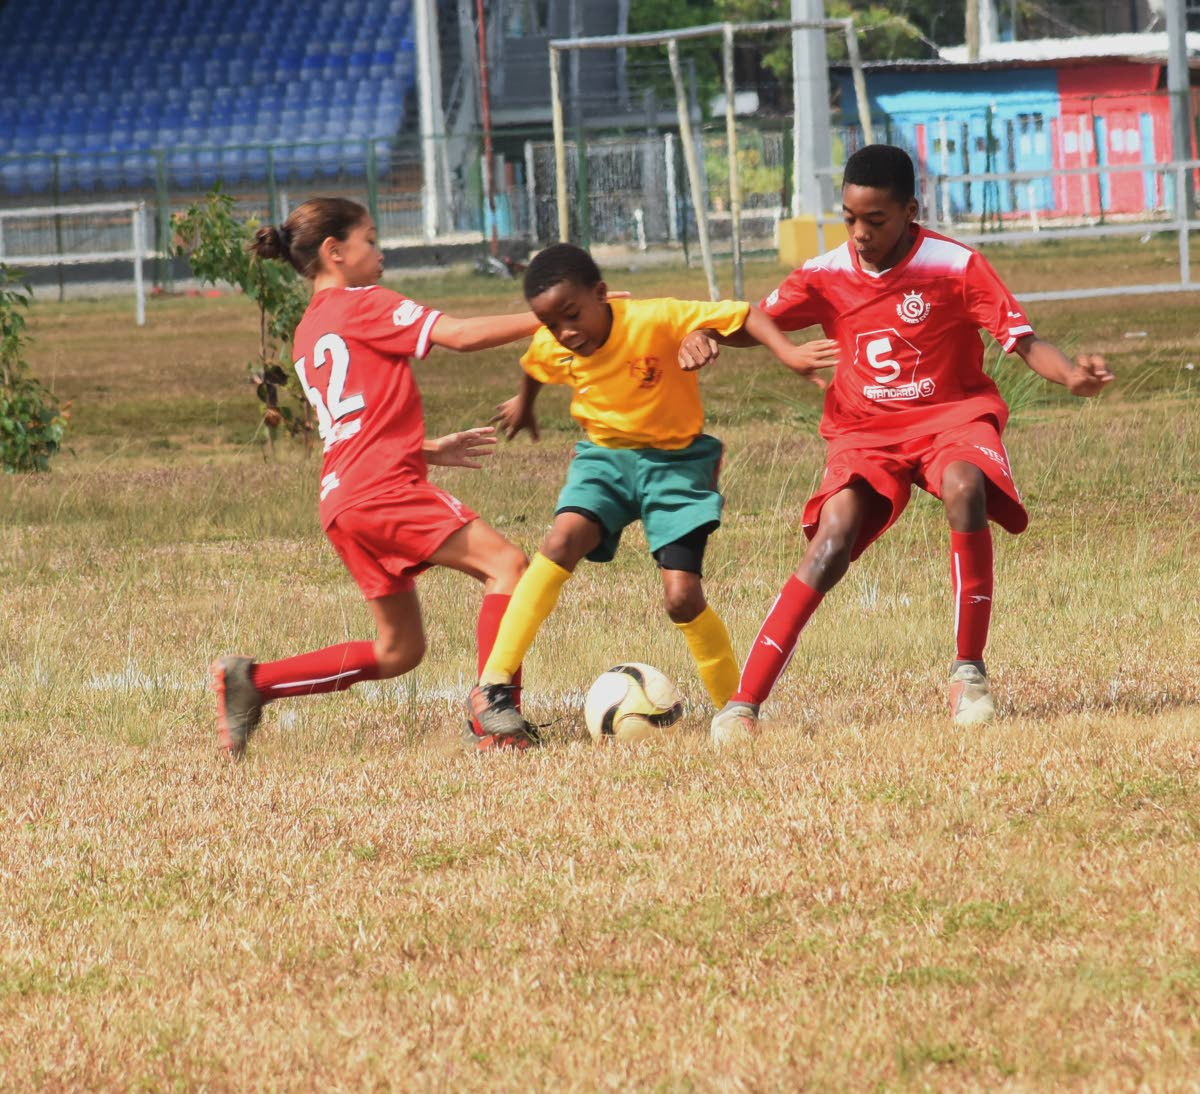 Jahseem Celestine of Trendsetter Hawks, centre, slips between Proseres' Kaitlyn Darwent, left, and Jonathan Mason in the Under 11 division of the Republic National Youth League. PHOTO BY KERWIN PIERRE